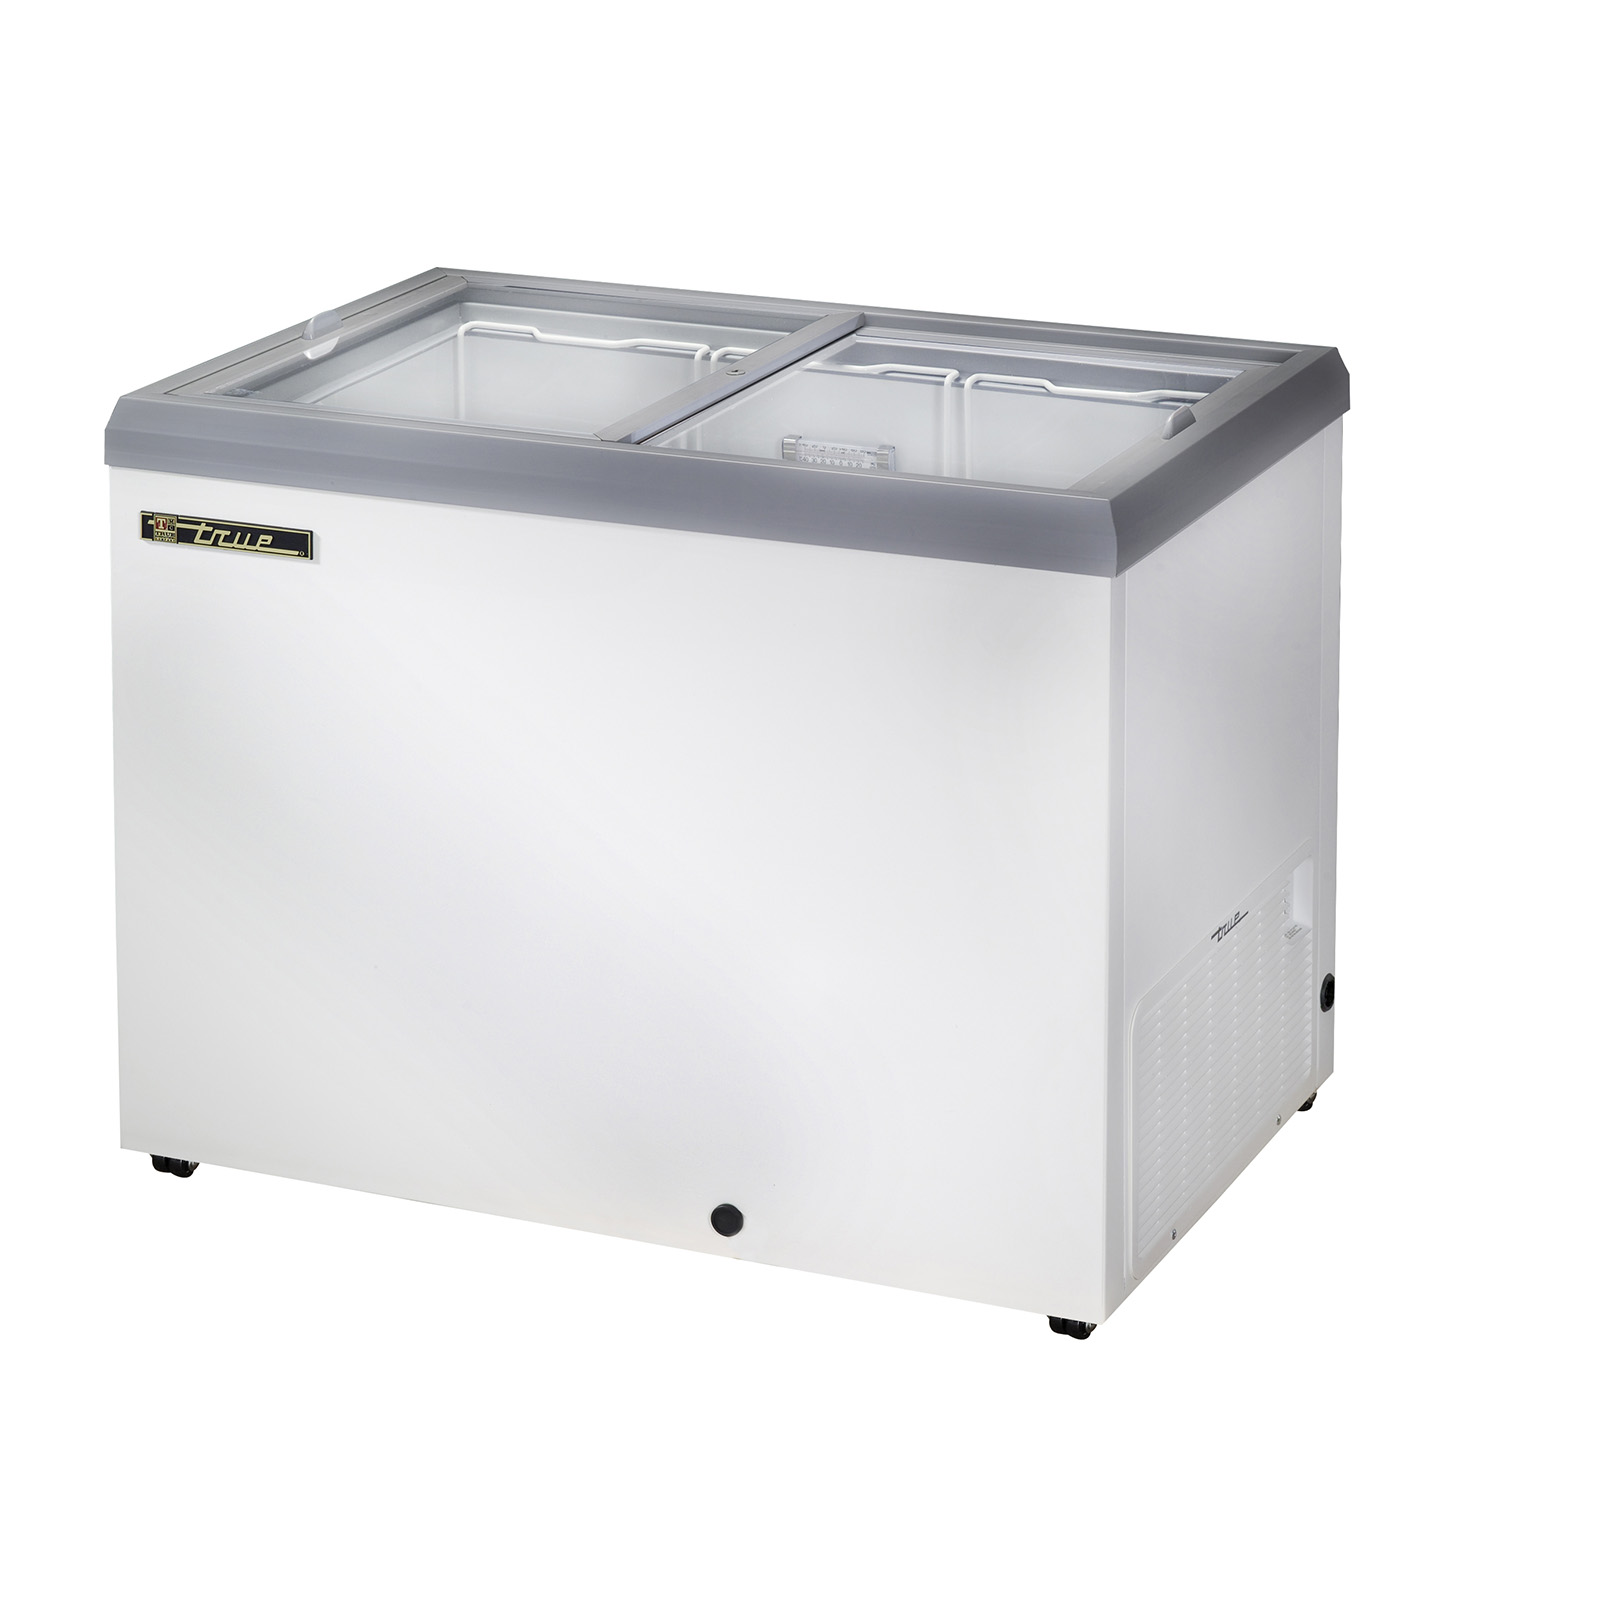 TFM-41FL-CFR True - Horizontal Convertible Freezer/Refrigerator -10? holding temp. (freezer) or 33? to 40? (refrigerator)